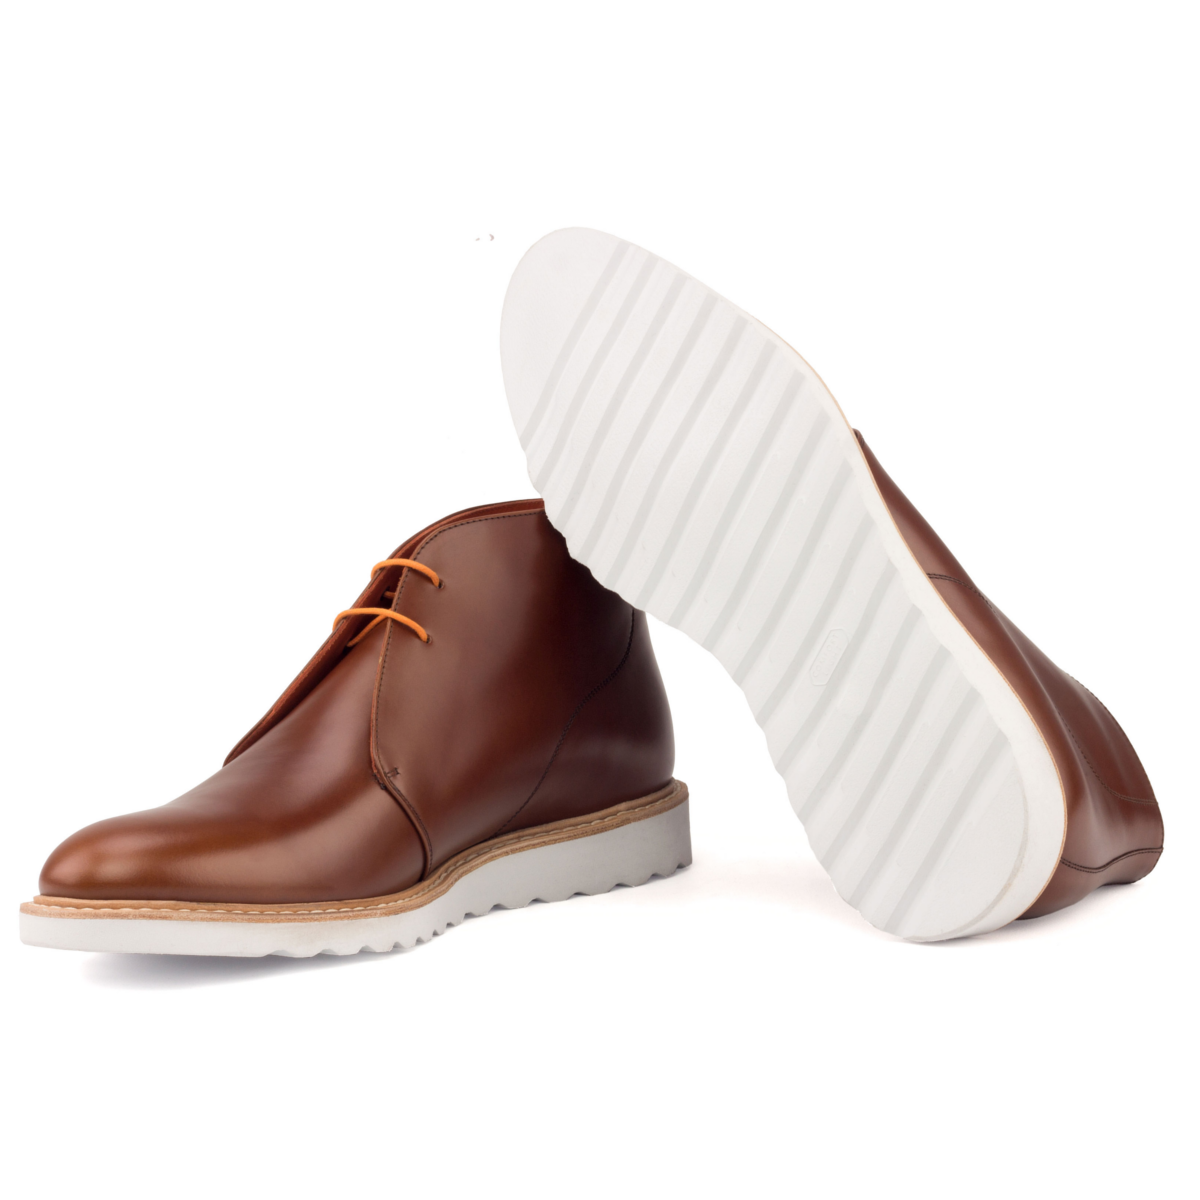 Chukka boot and sport sole